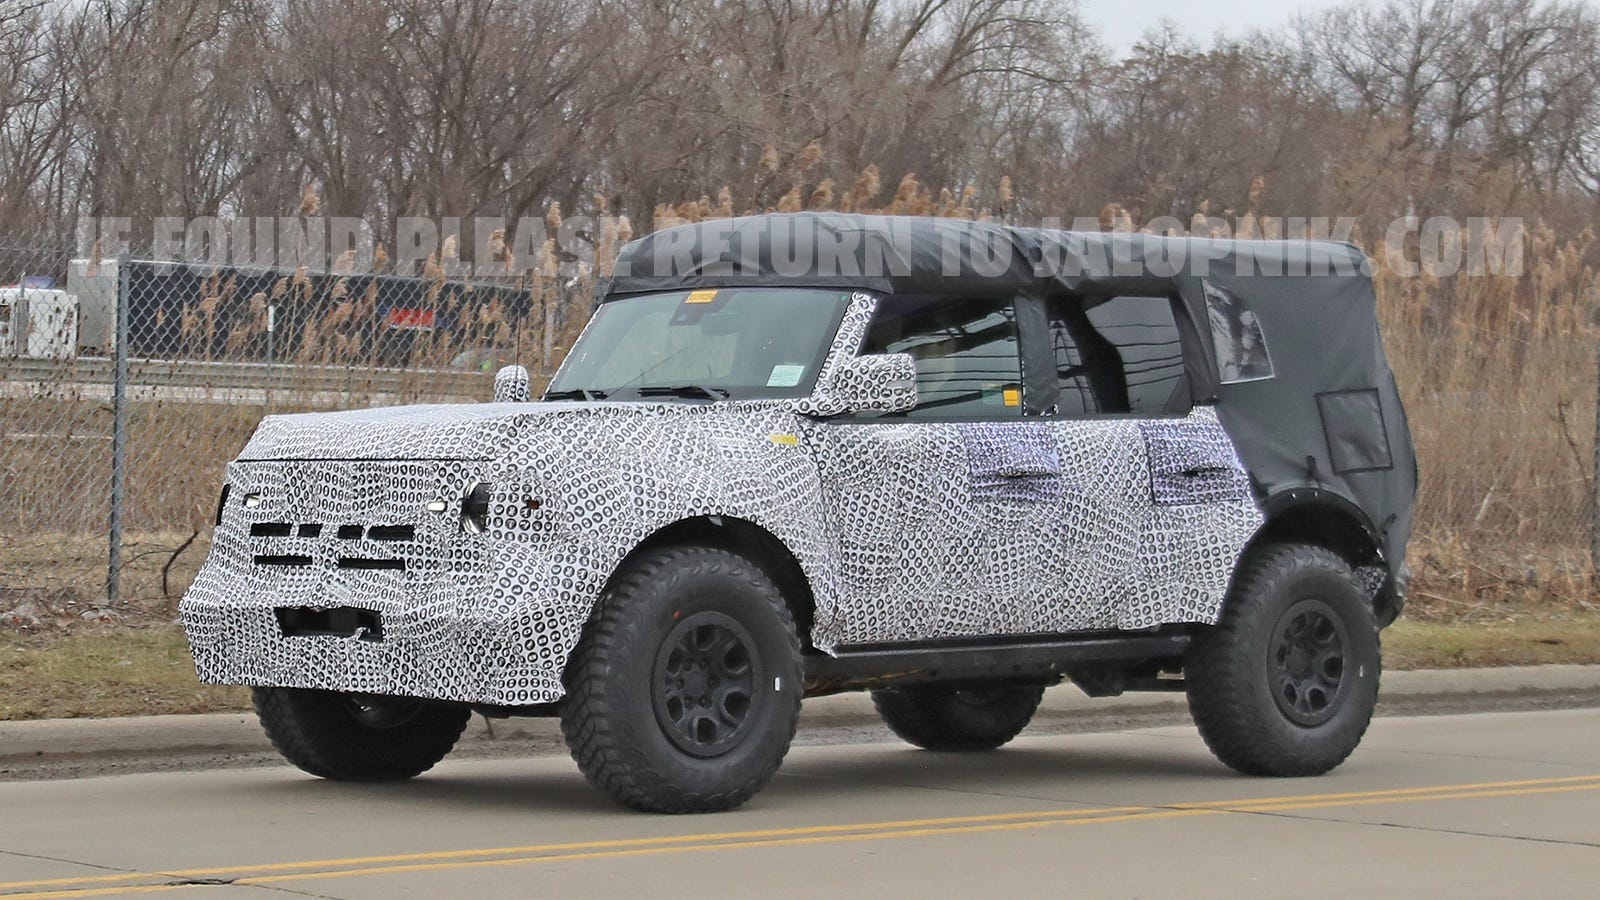 2021 Ford Bronco: Here Are Some Spy Shots